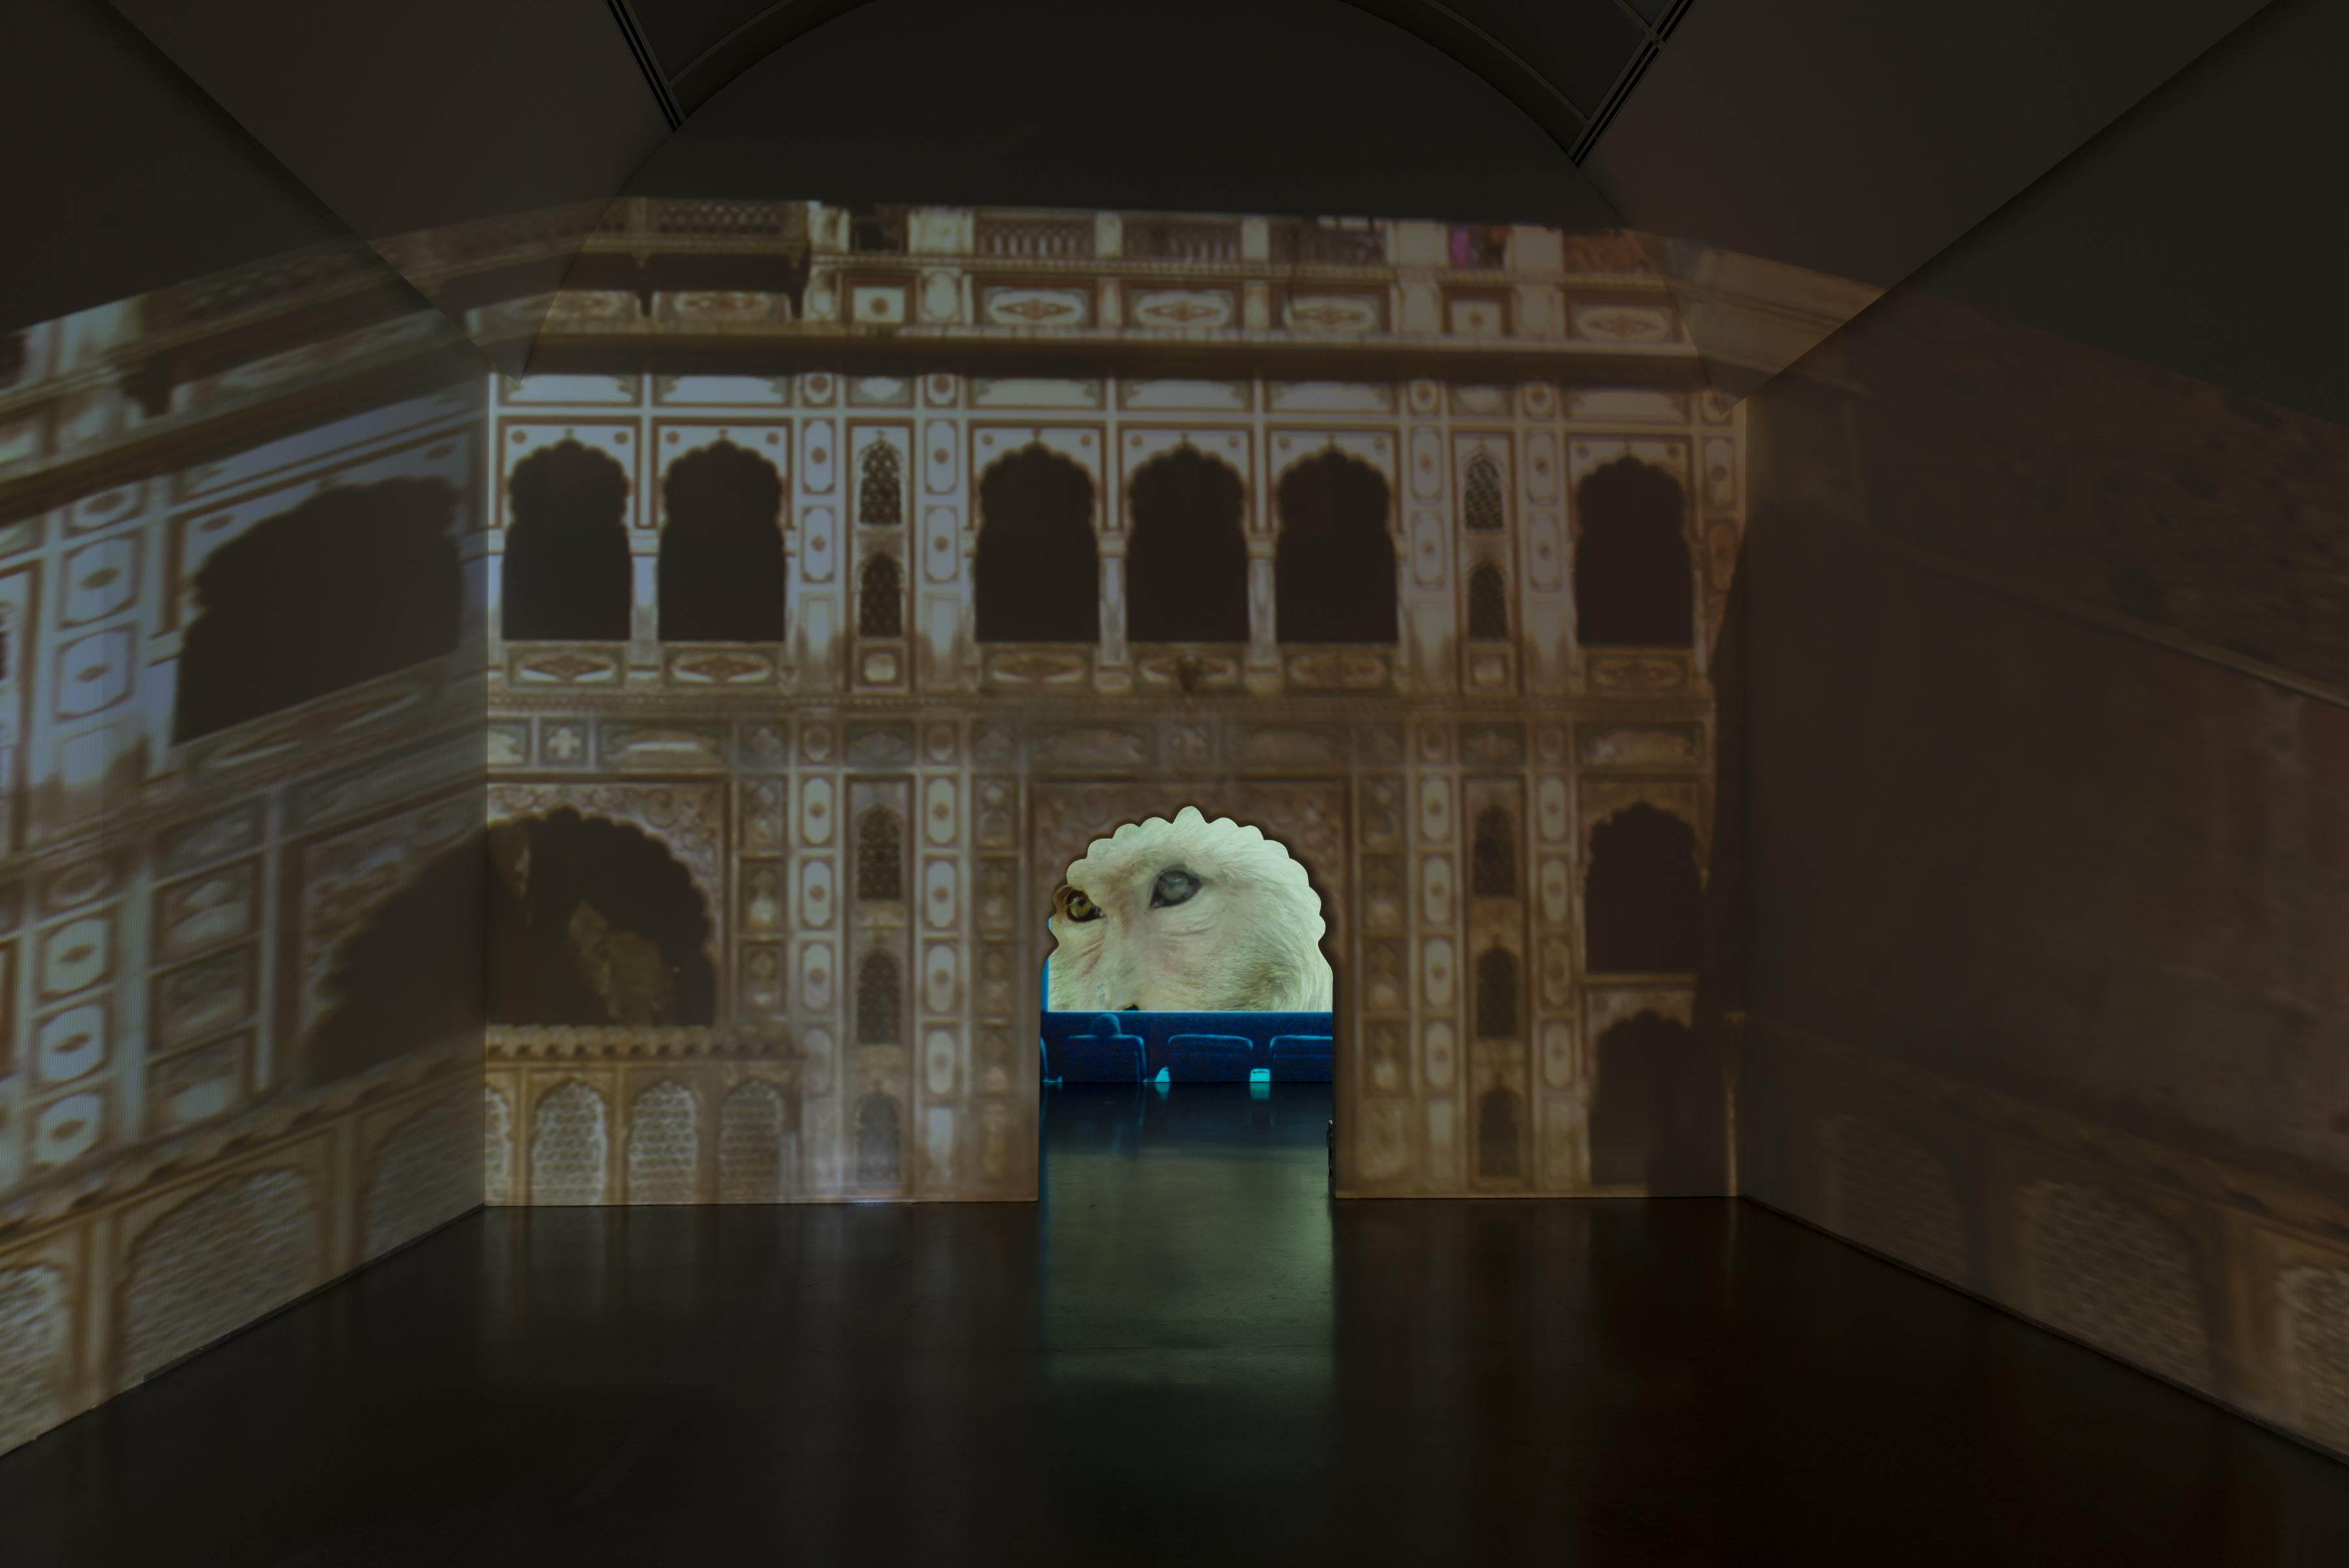 The facade of a temple in ruins is projected onto three walls. A scalloped doorway in the middle reveals a close-up projection of a monkey's face in the room beyond.